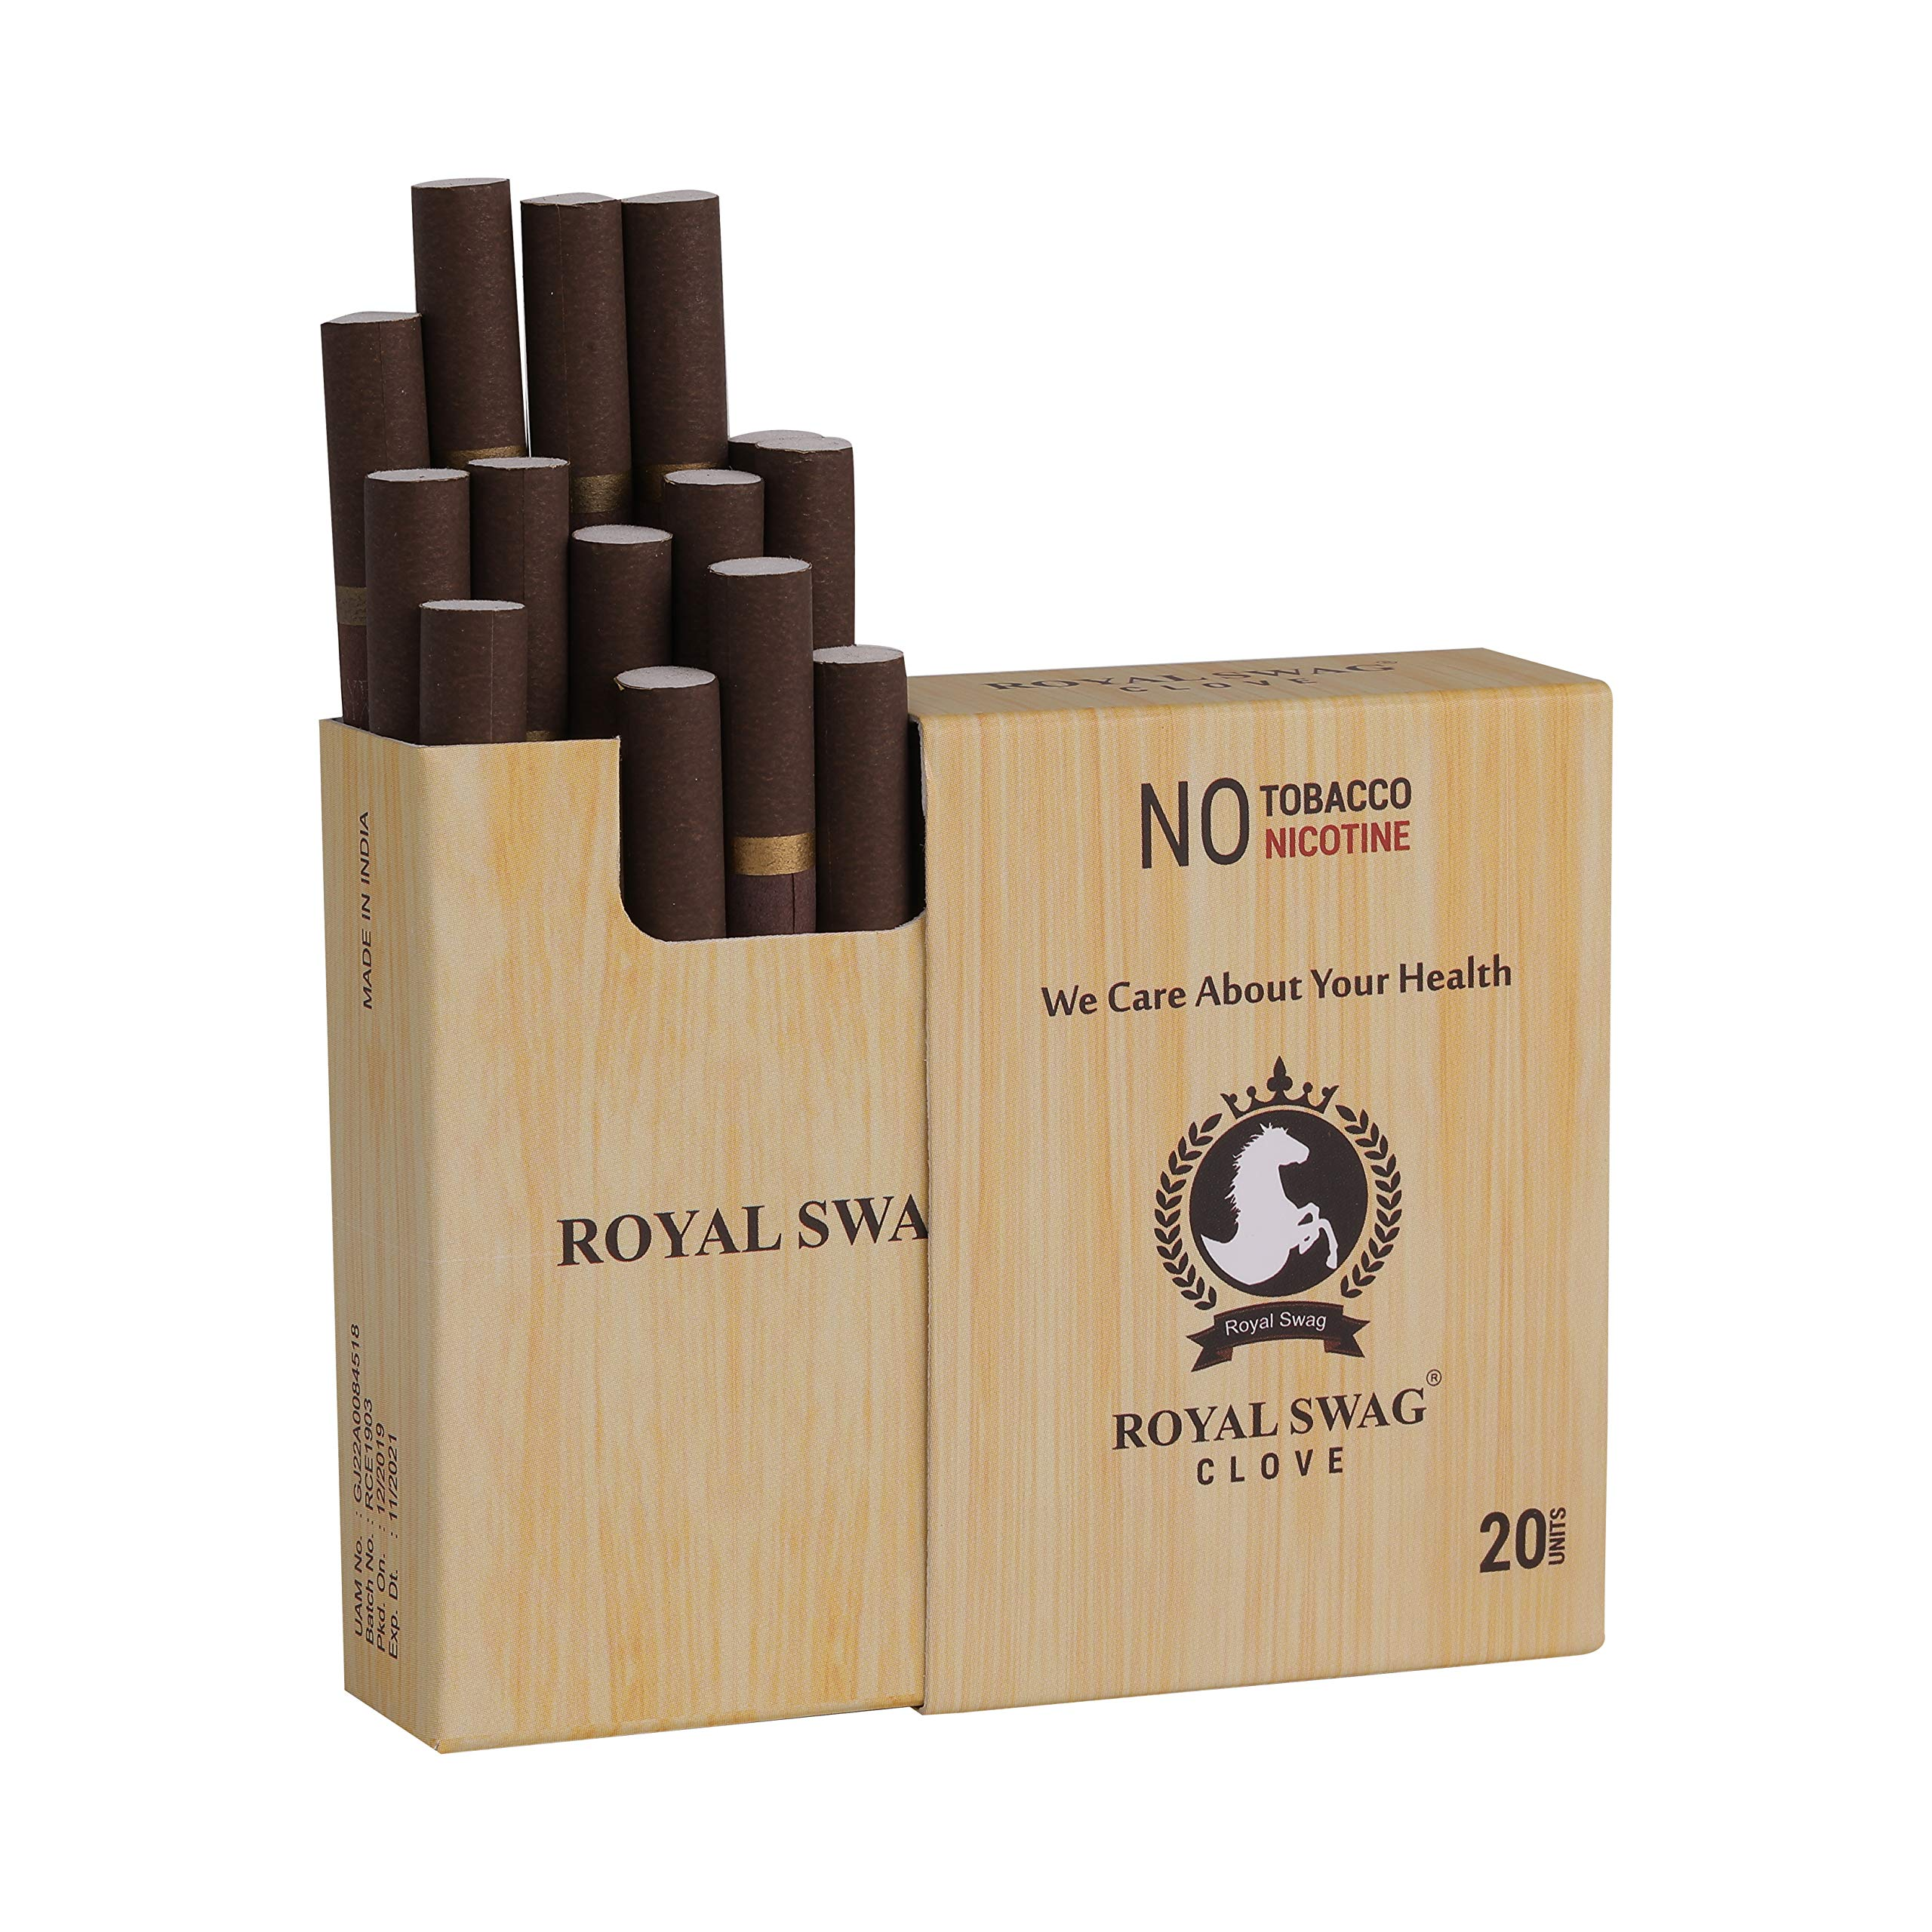 Royal Swag Ayurvedic Cigarette 20Unit Pack Clove Flavour Nicotine Free and Tobacco Free